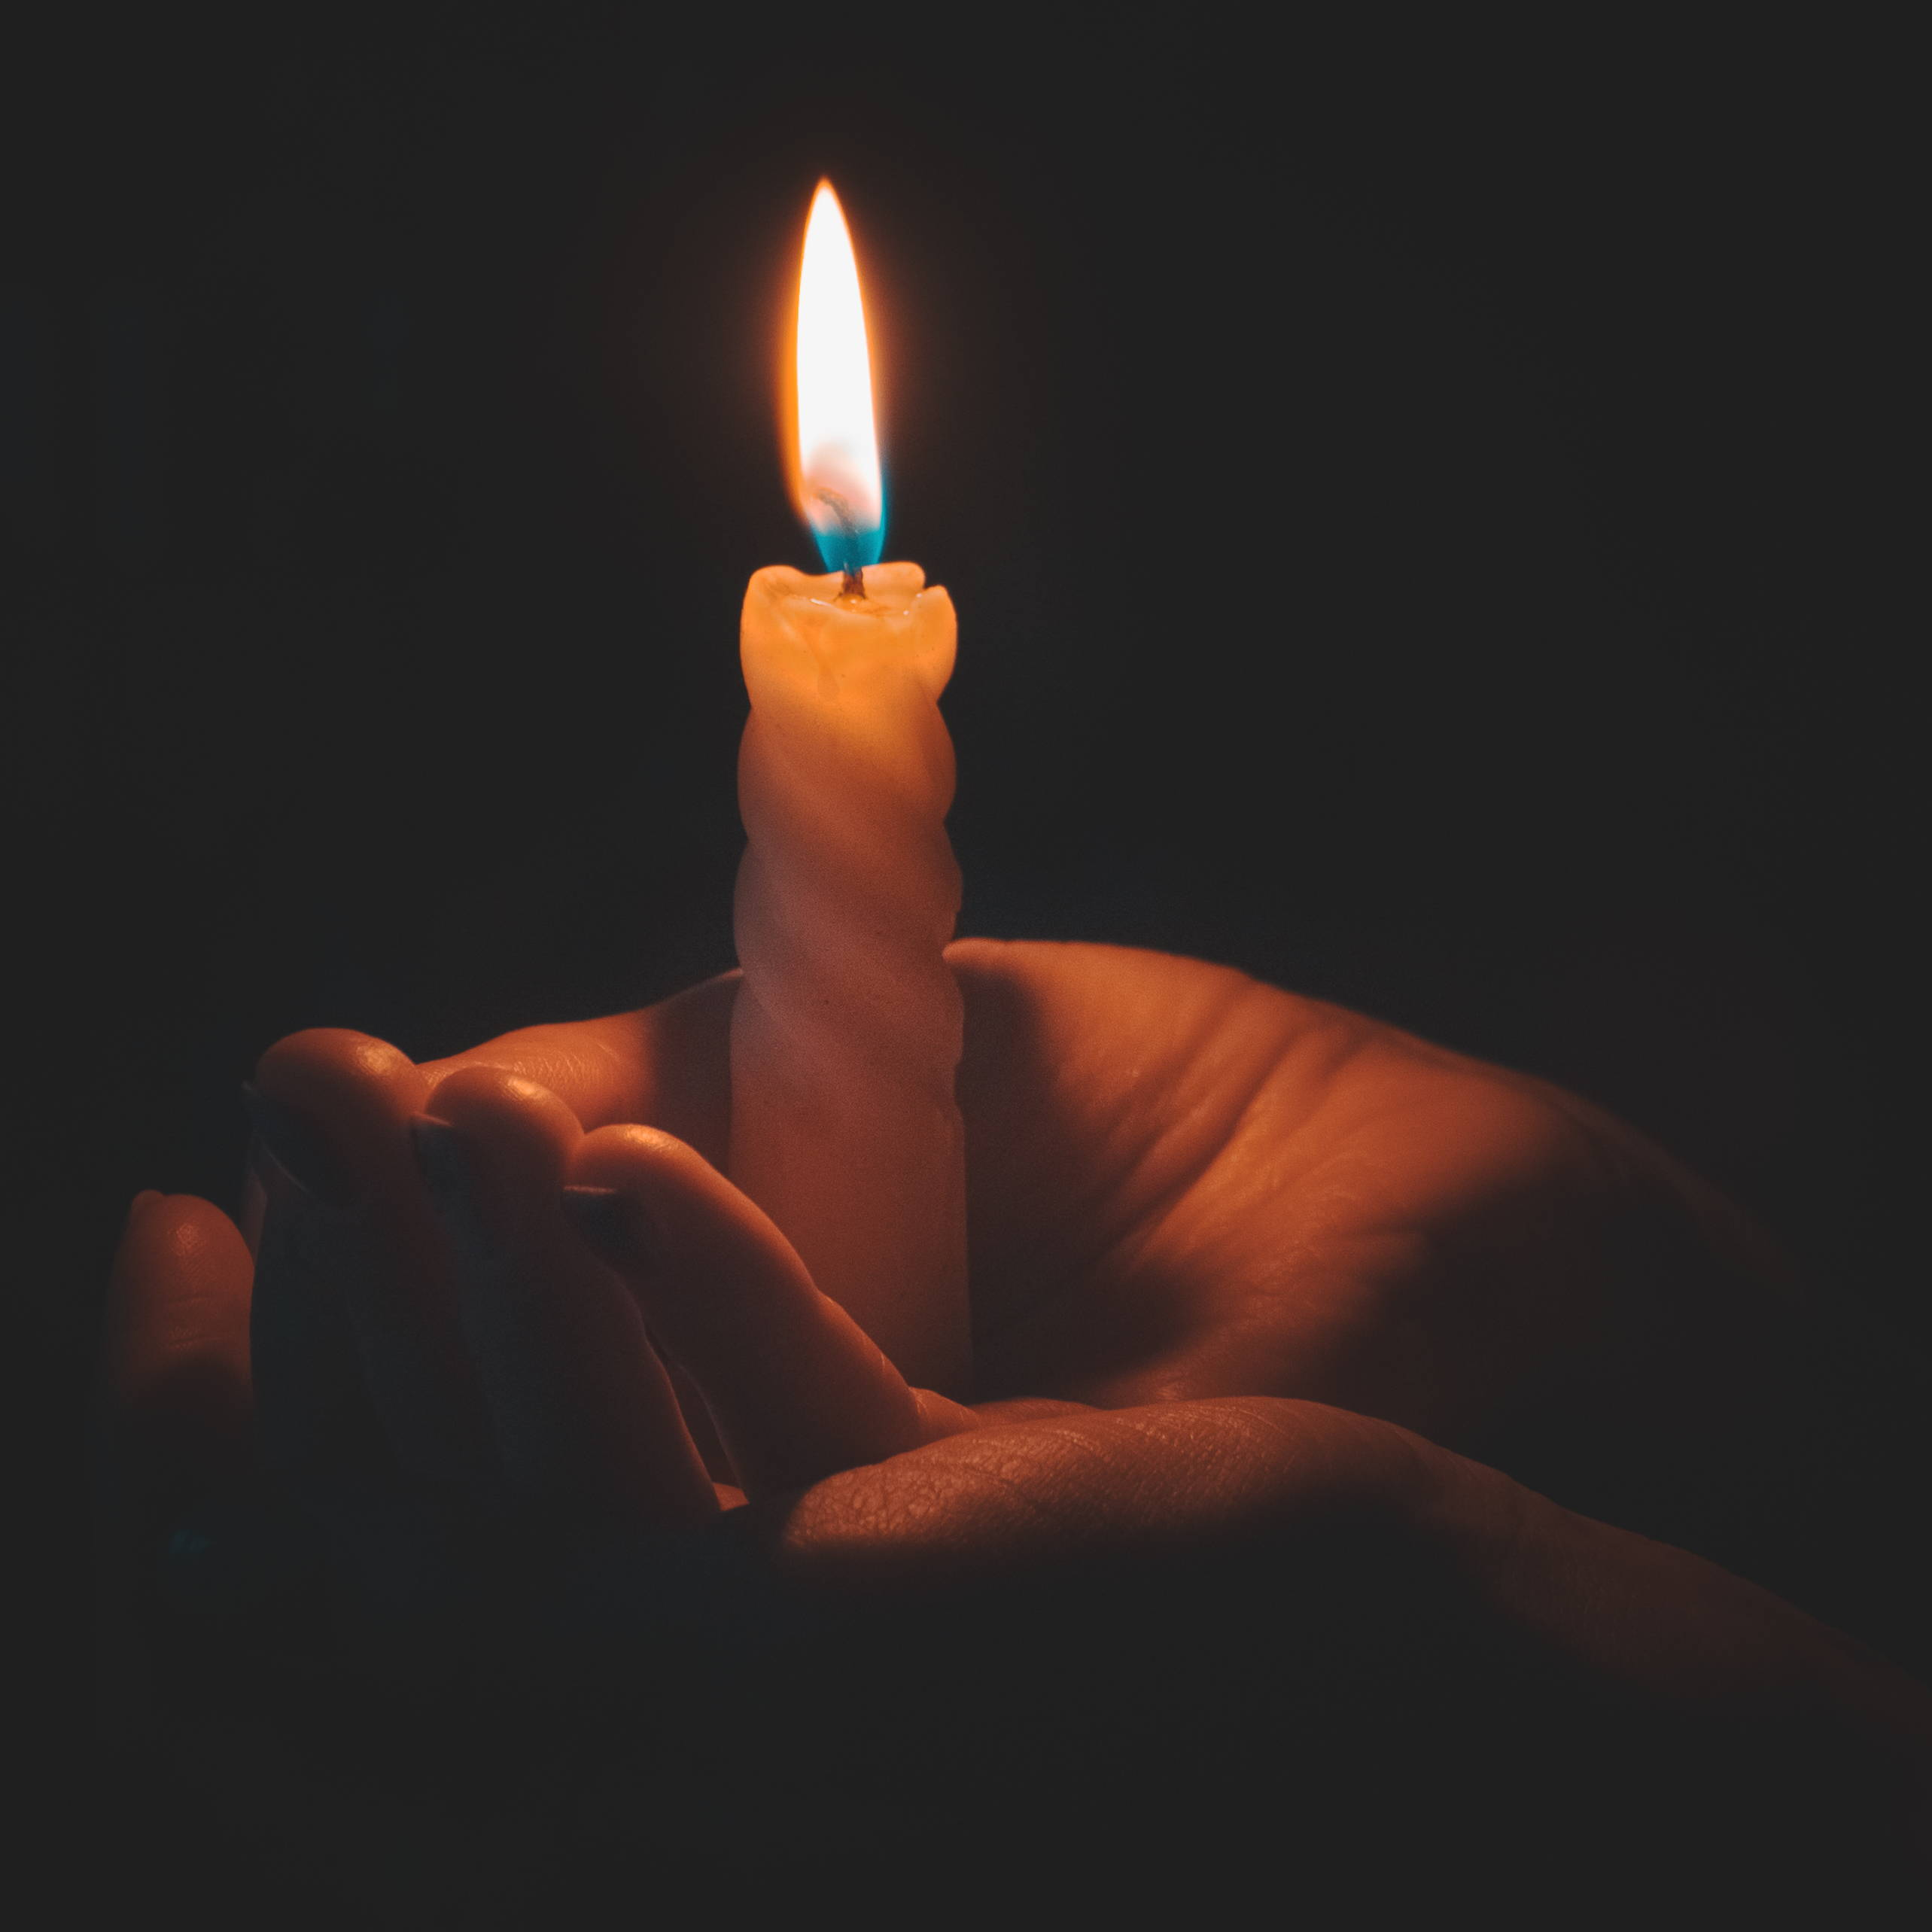 Male hands holding candle